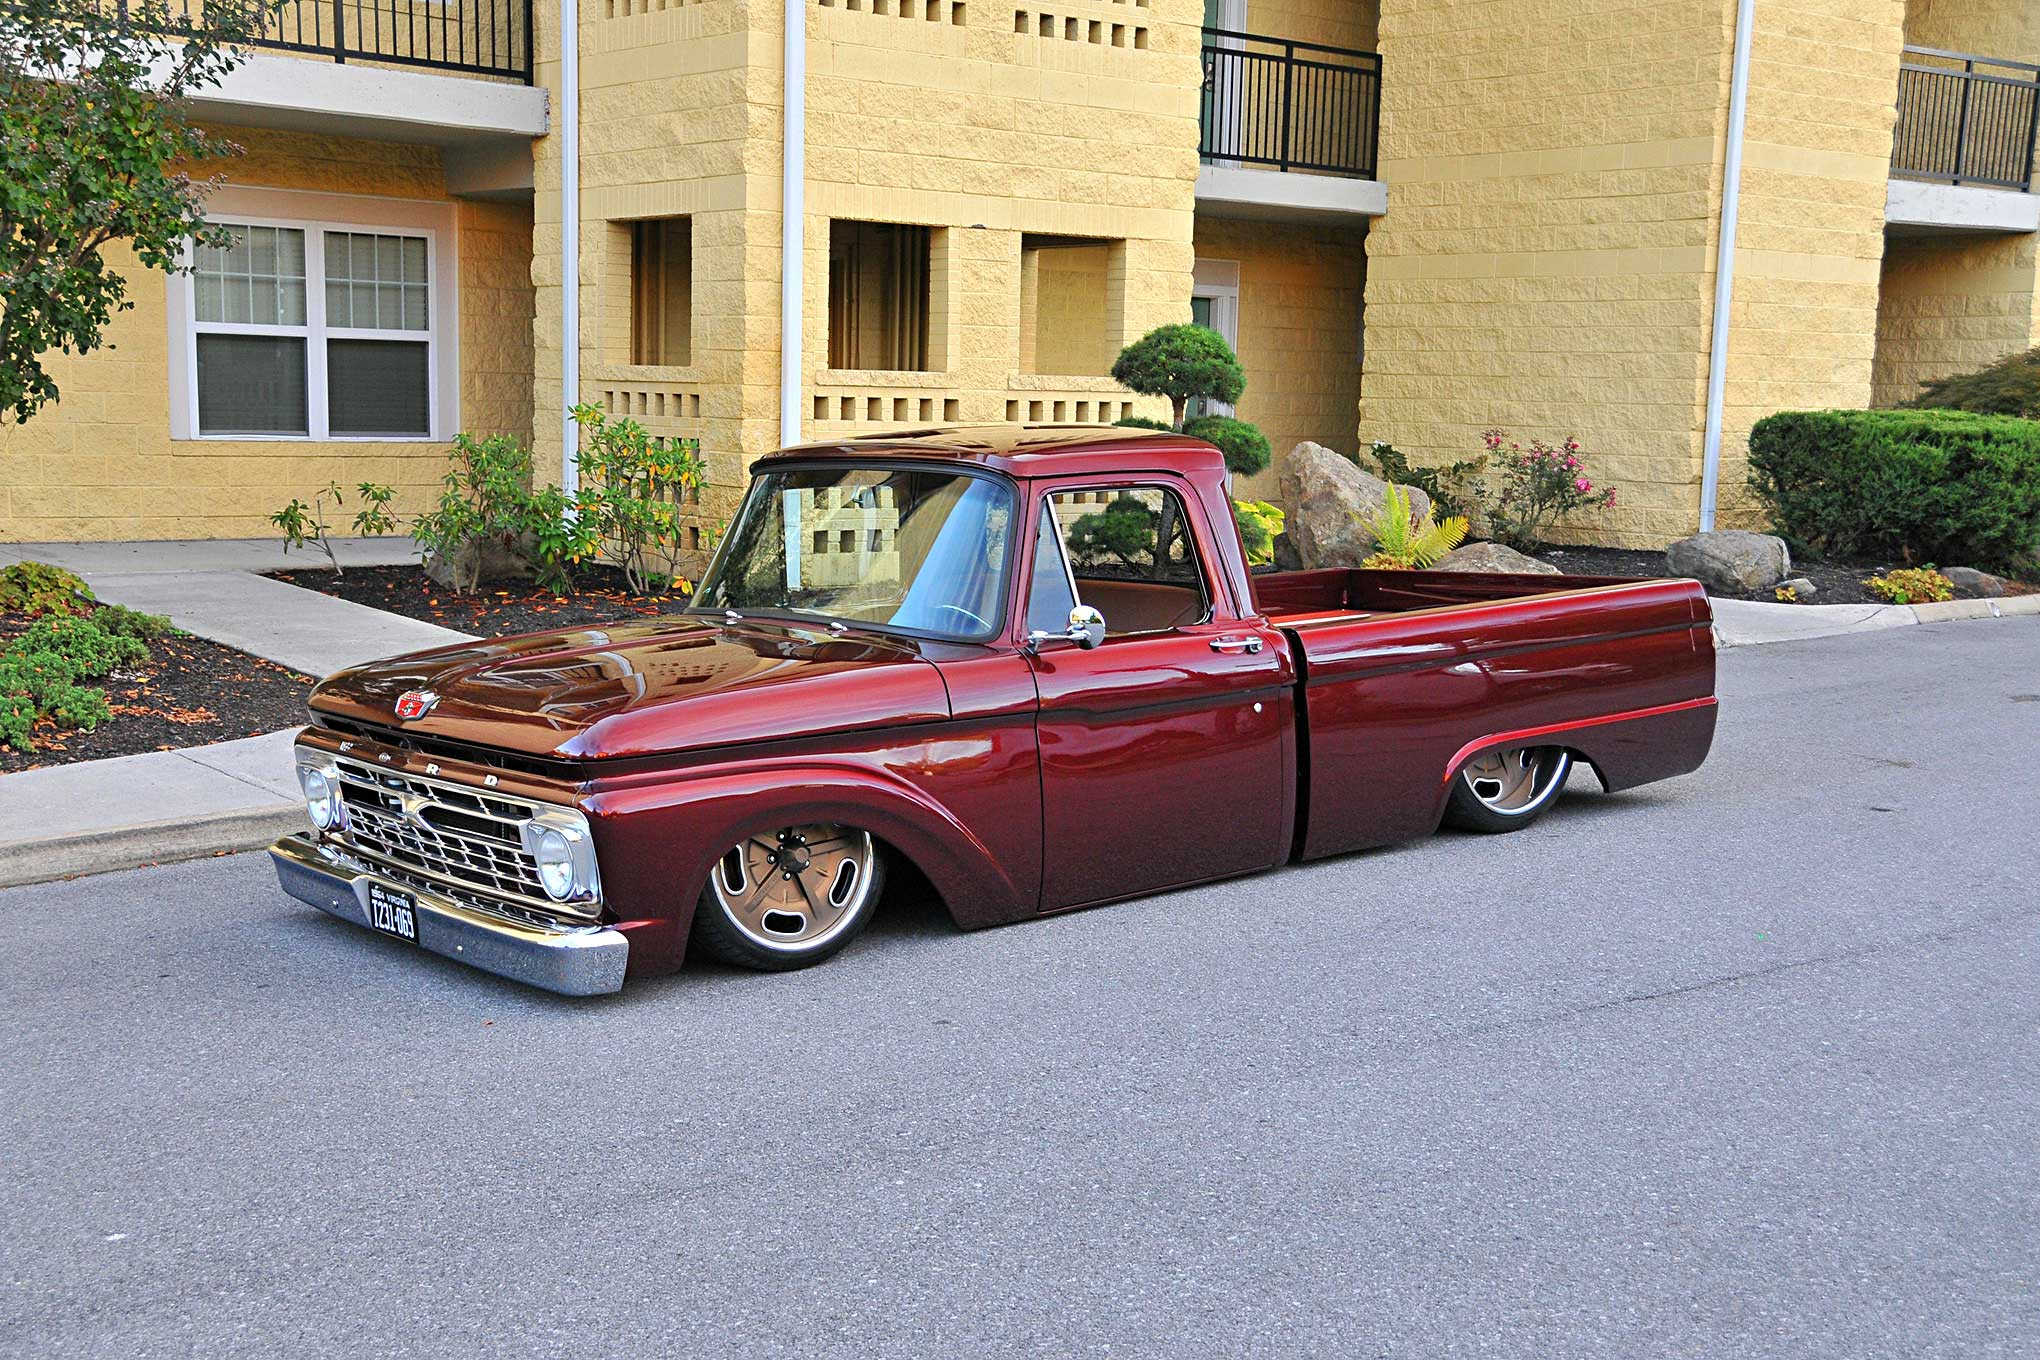 1964 Ford F100 Driver Side Front View Lowrider Pickup About This Editor